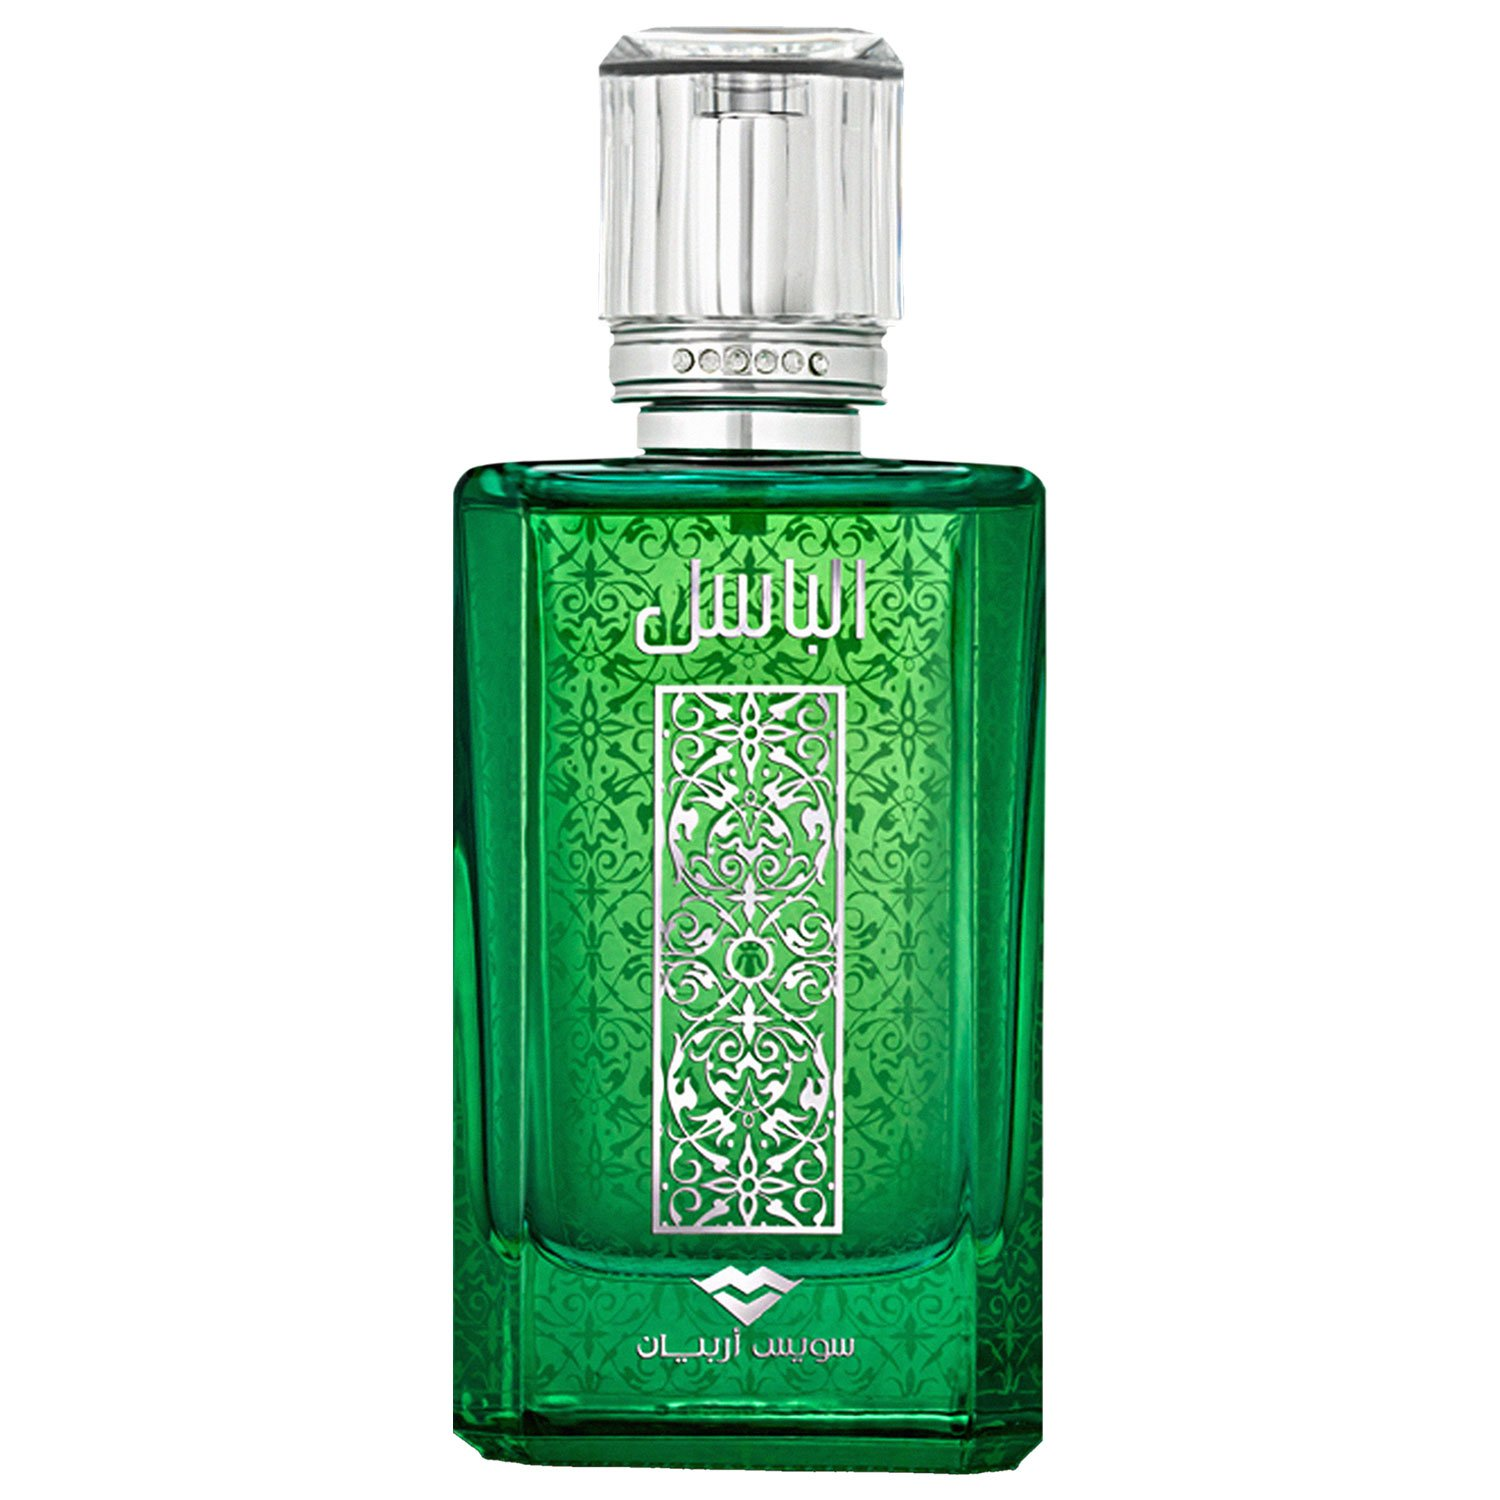 Al Basel 100mL, an aromatic citrus Eau de Parfum for Men with sultry warm spices, Patchouli, Black Amber and Leather by perfume artisan Swiss Arabian